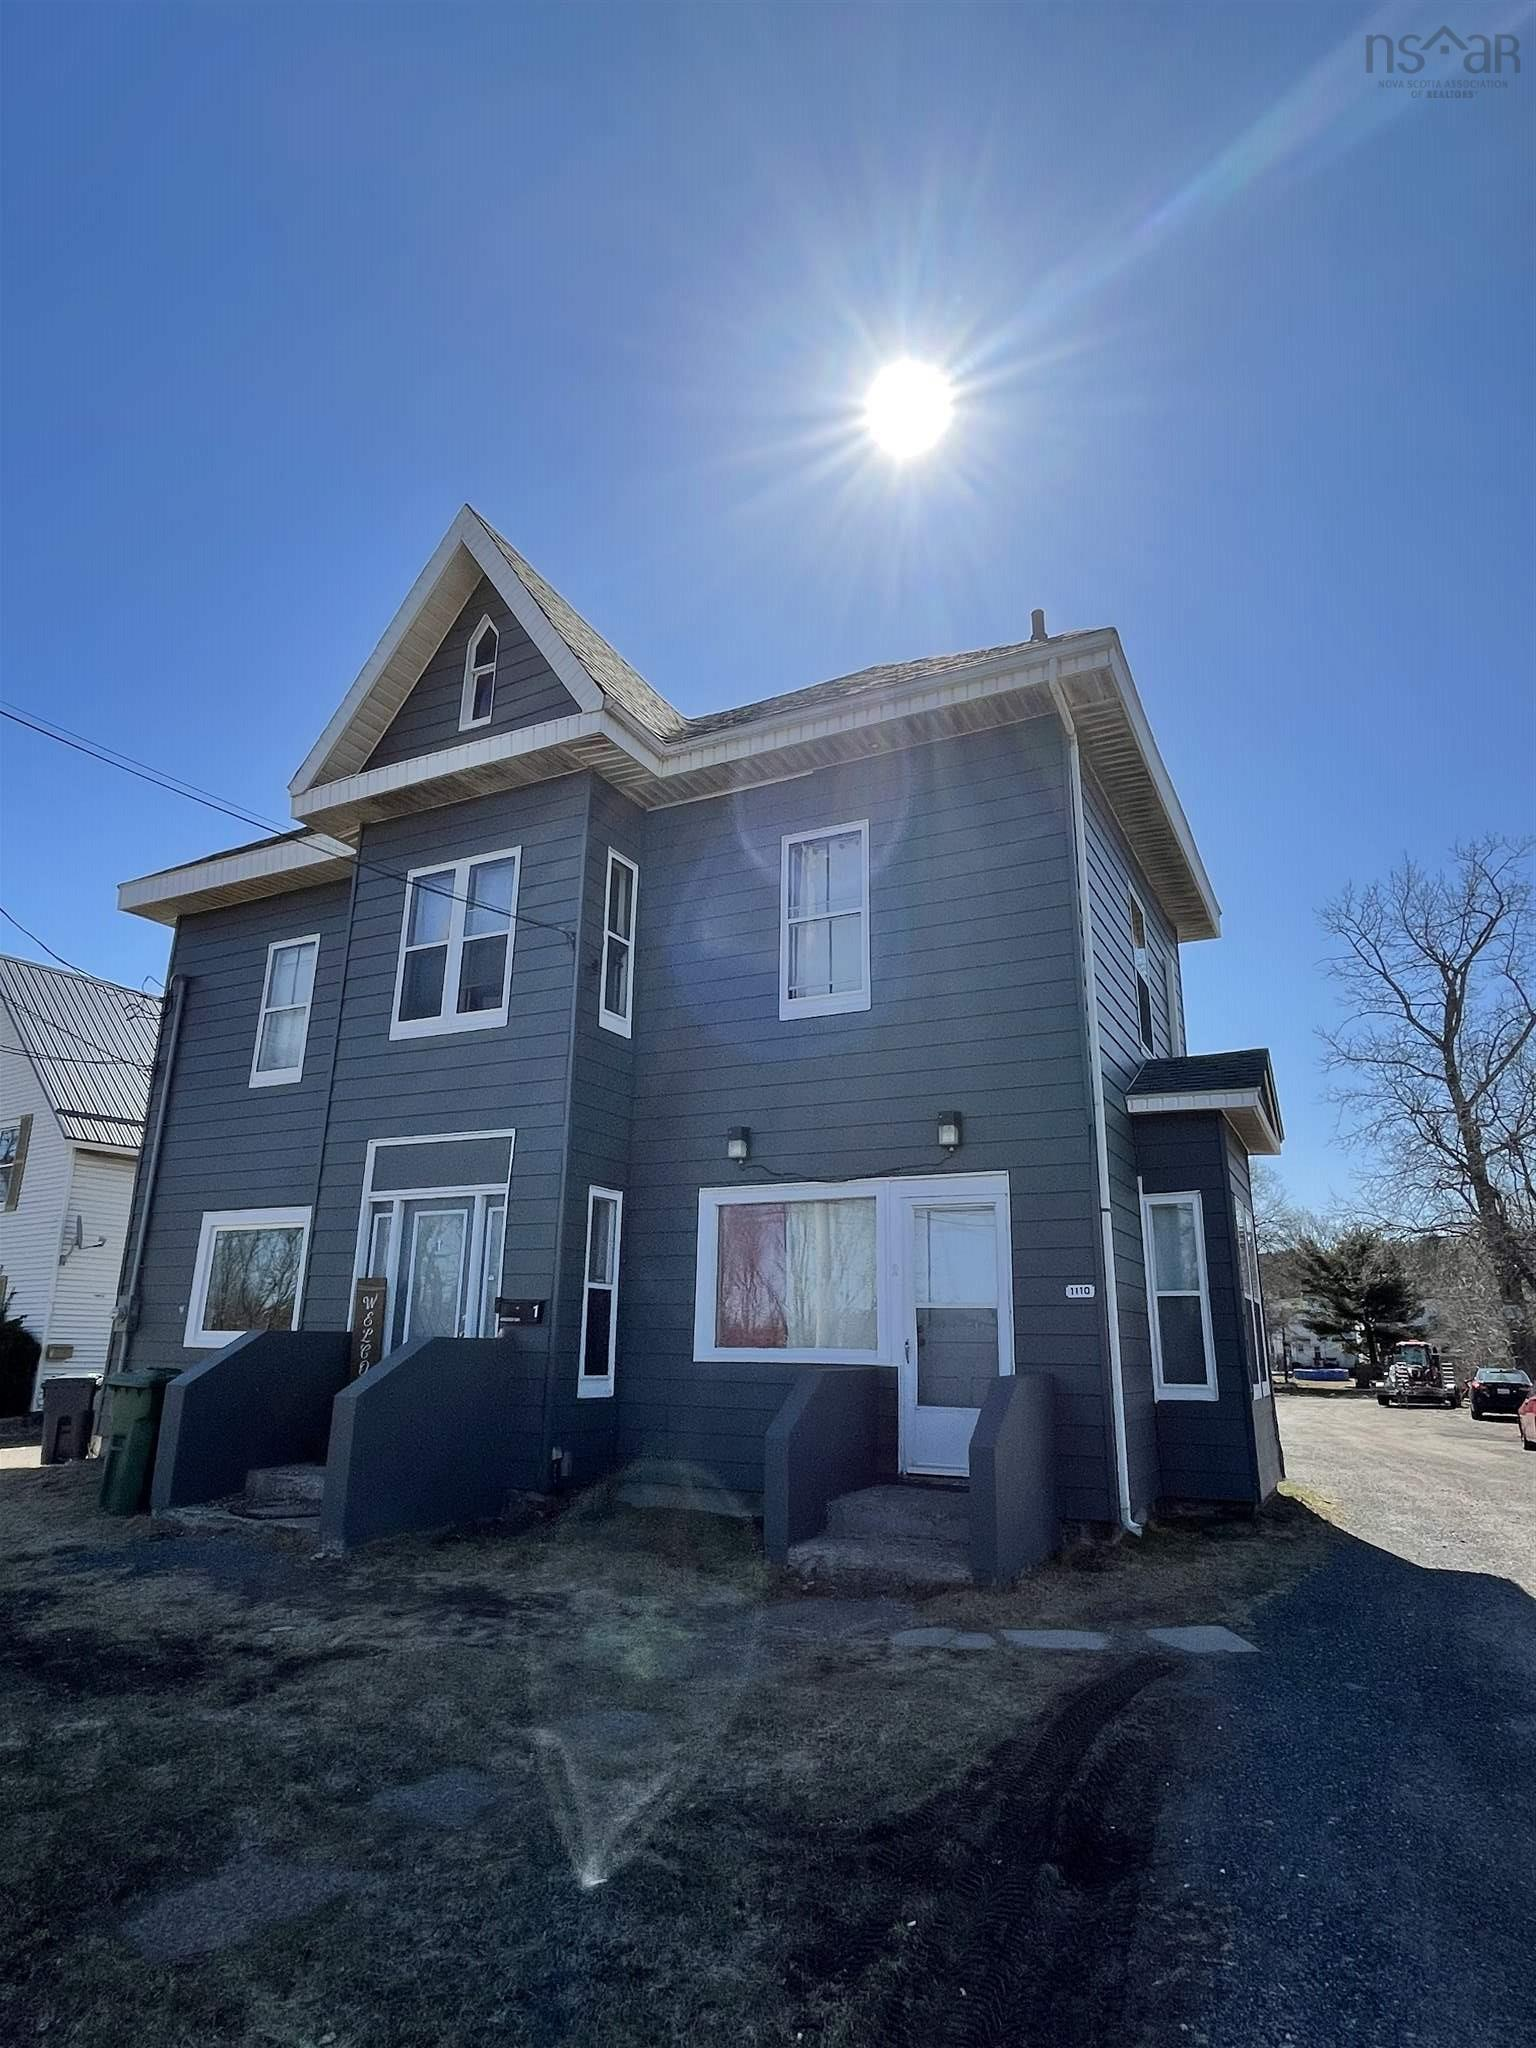 1110 Prince Street, Truro, Colchester, NS, United States B2N 1J1, ,Multi-unit,For Sale,1110 Prince Street,202106556